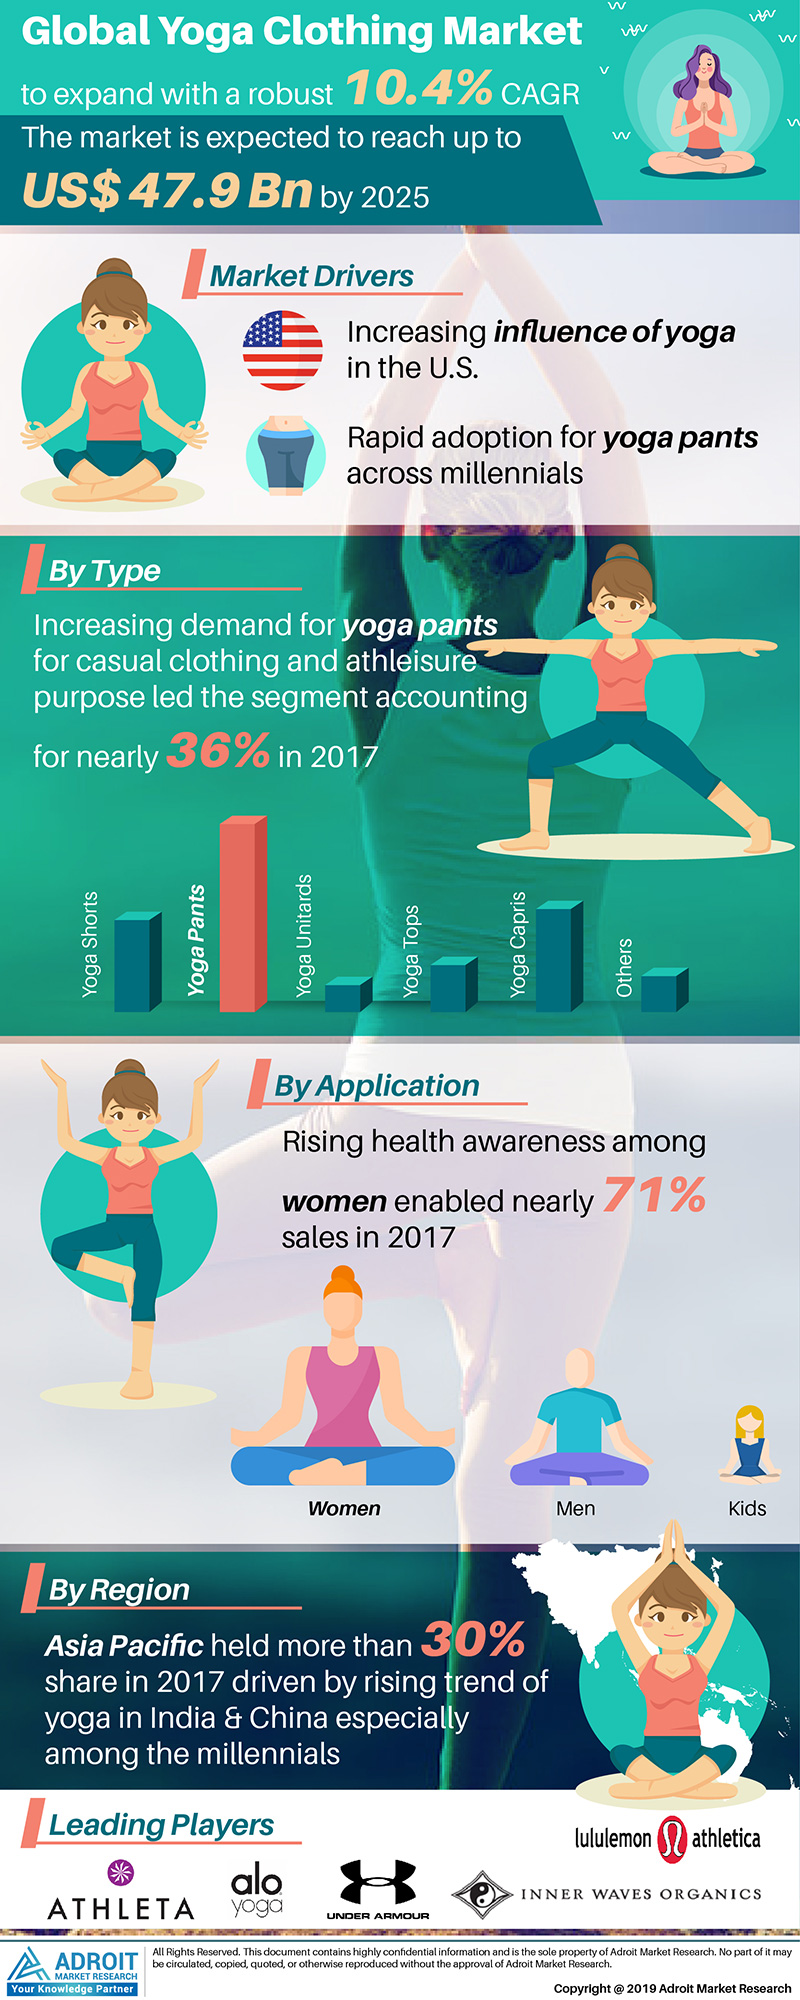 Global Yoga Clothing Market Size 2017 By Type, Application, Region and Forecast 2018 to 2025